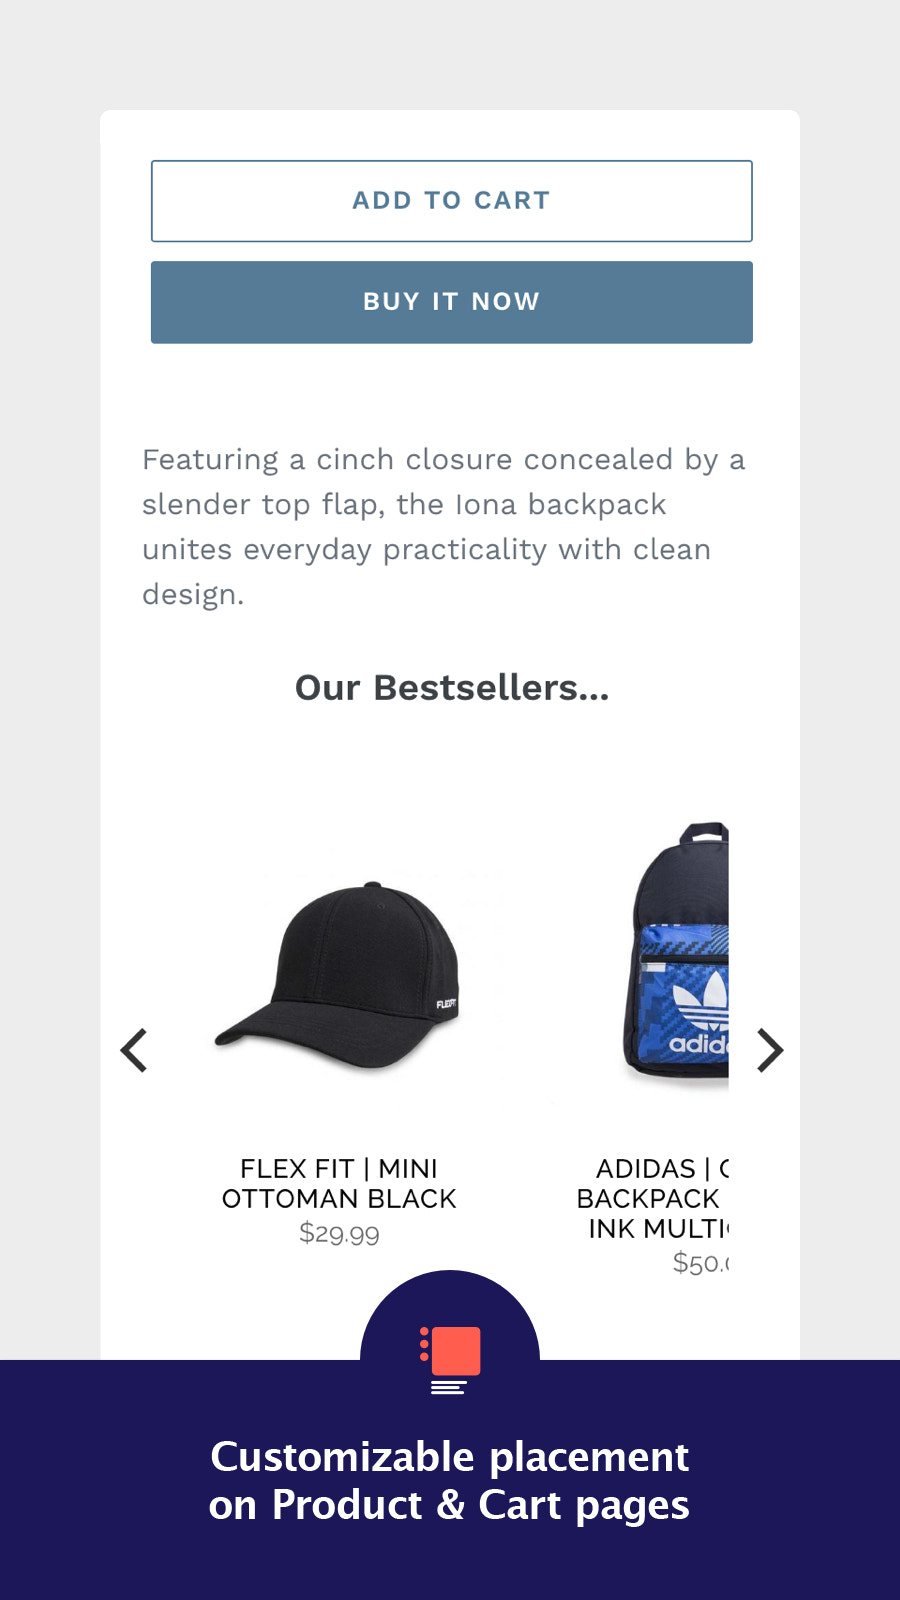 Cross sell on product pages